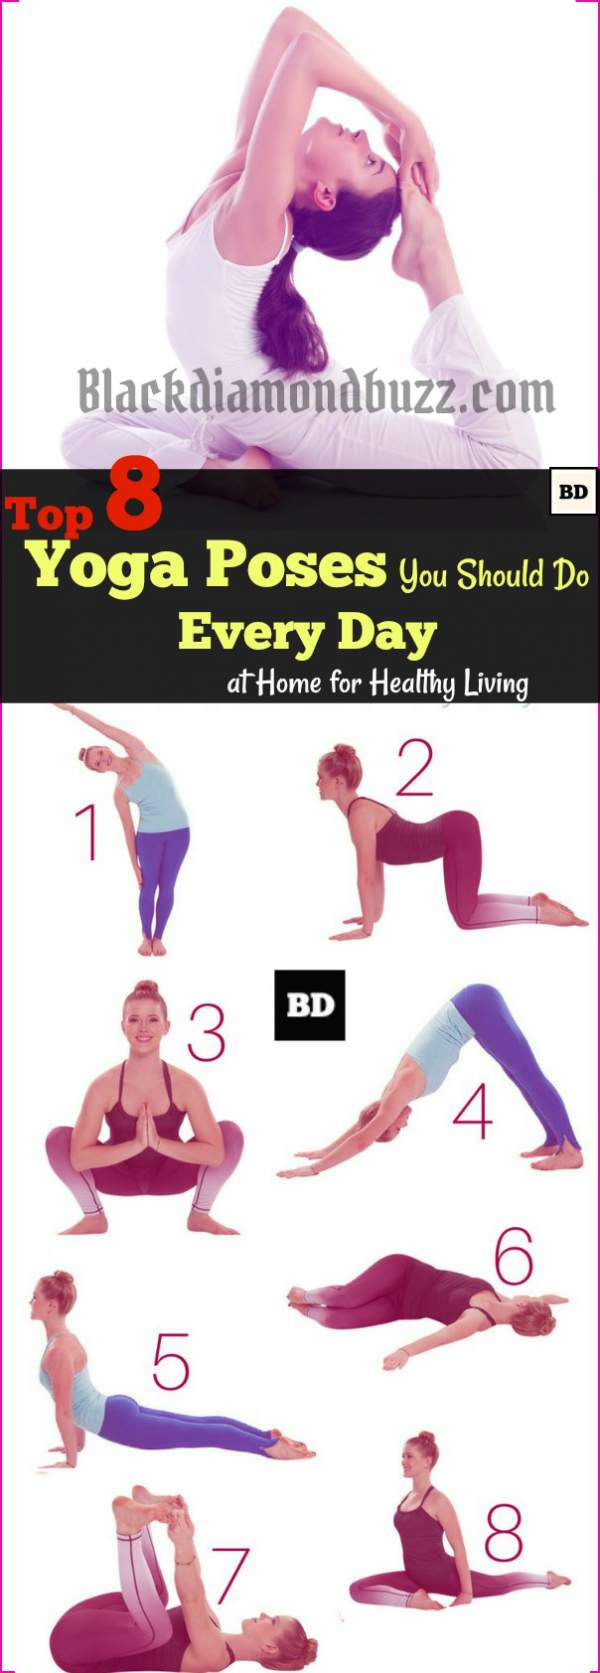 Top 8 Yoga Poses You Should Do Every Day at Home for Healthy Living